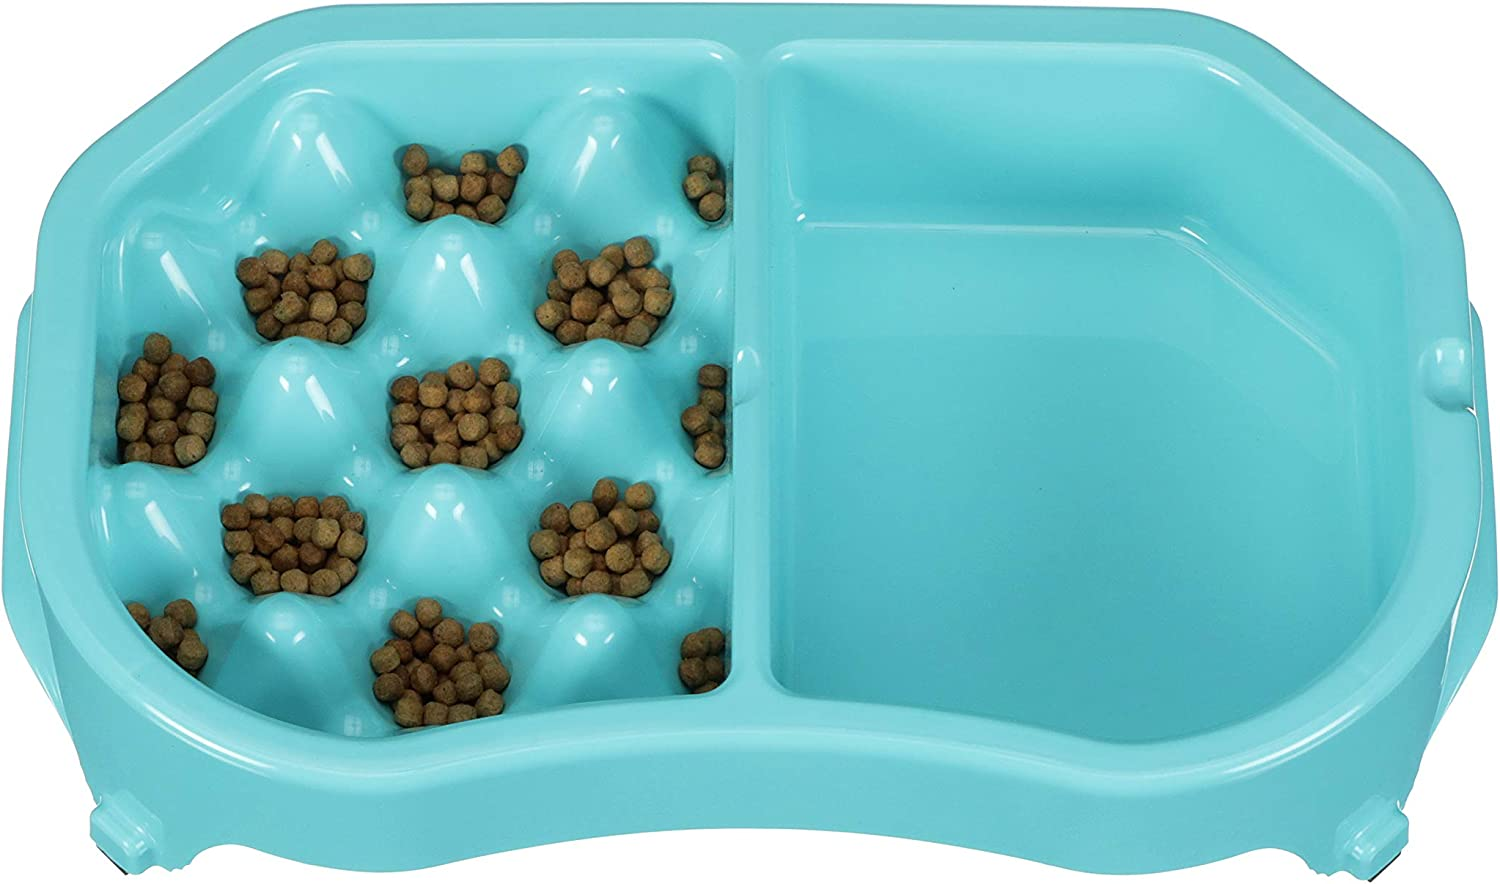 Neater Pet Brands - Neater Slow Feeder - Fun, Healthy, Stress Free Dog Bowl Helps Stop Bloat Prevents Obesity Improves Digestion (2.5 Cup, 6 Cup, Double Diner/w Water Bowl)